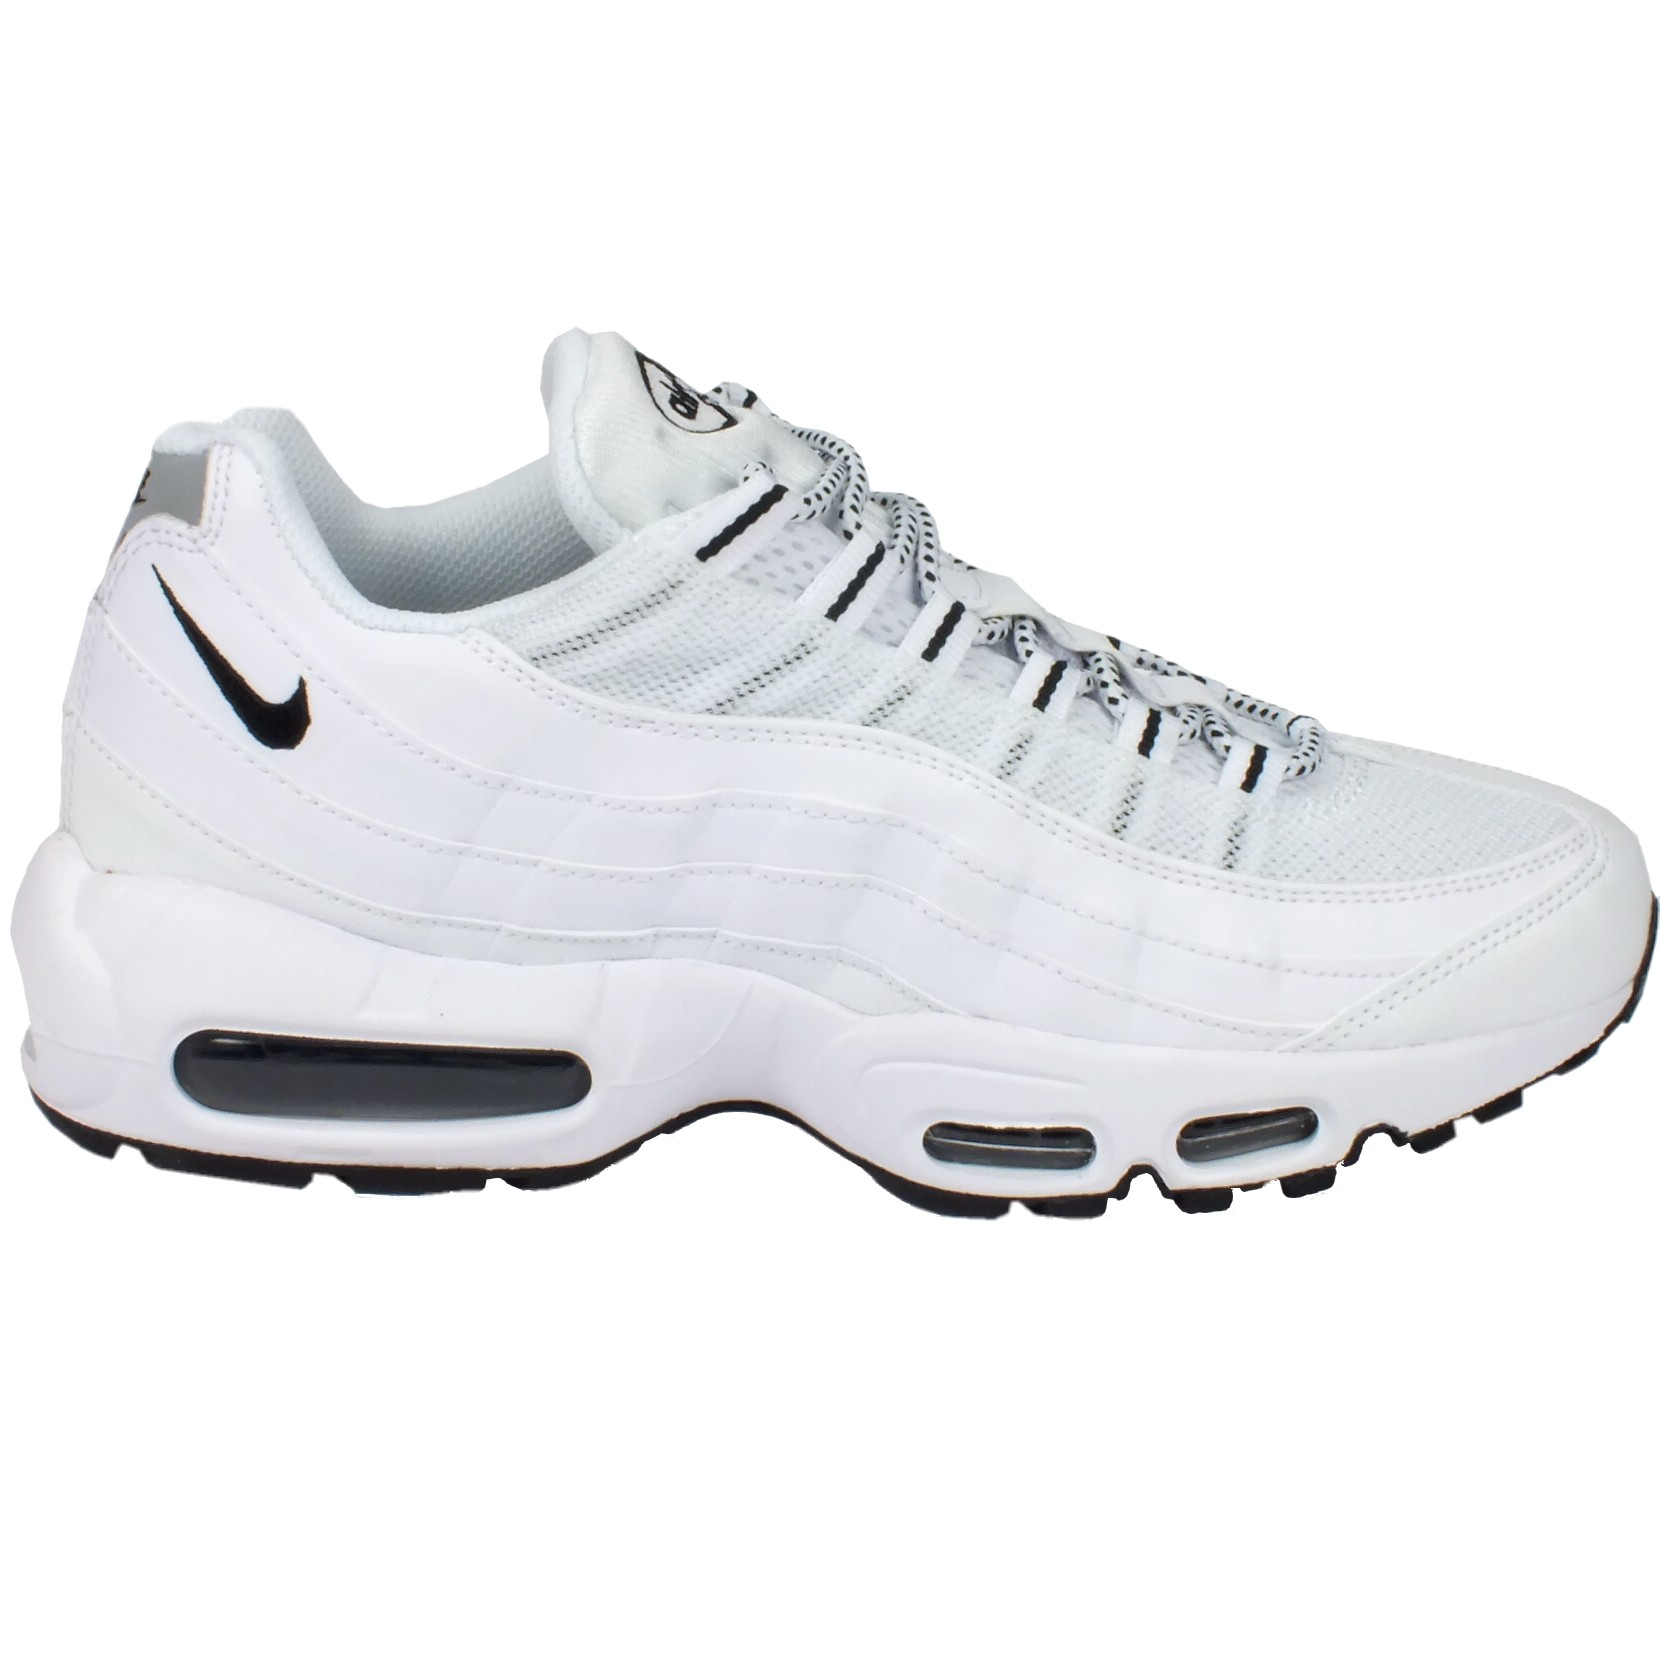 nike air max 95 schuhe turnschuhe sneaker herren wei. Black Bedroom Furniture Sets. Home Design Ideas